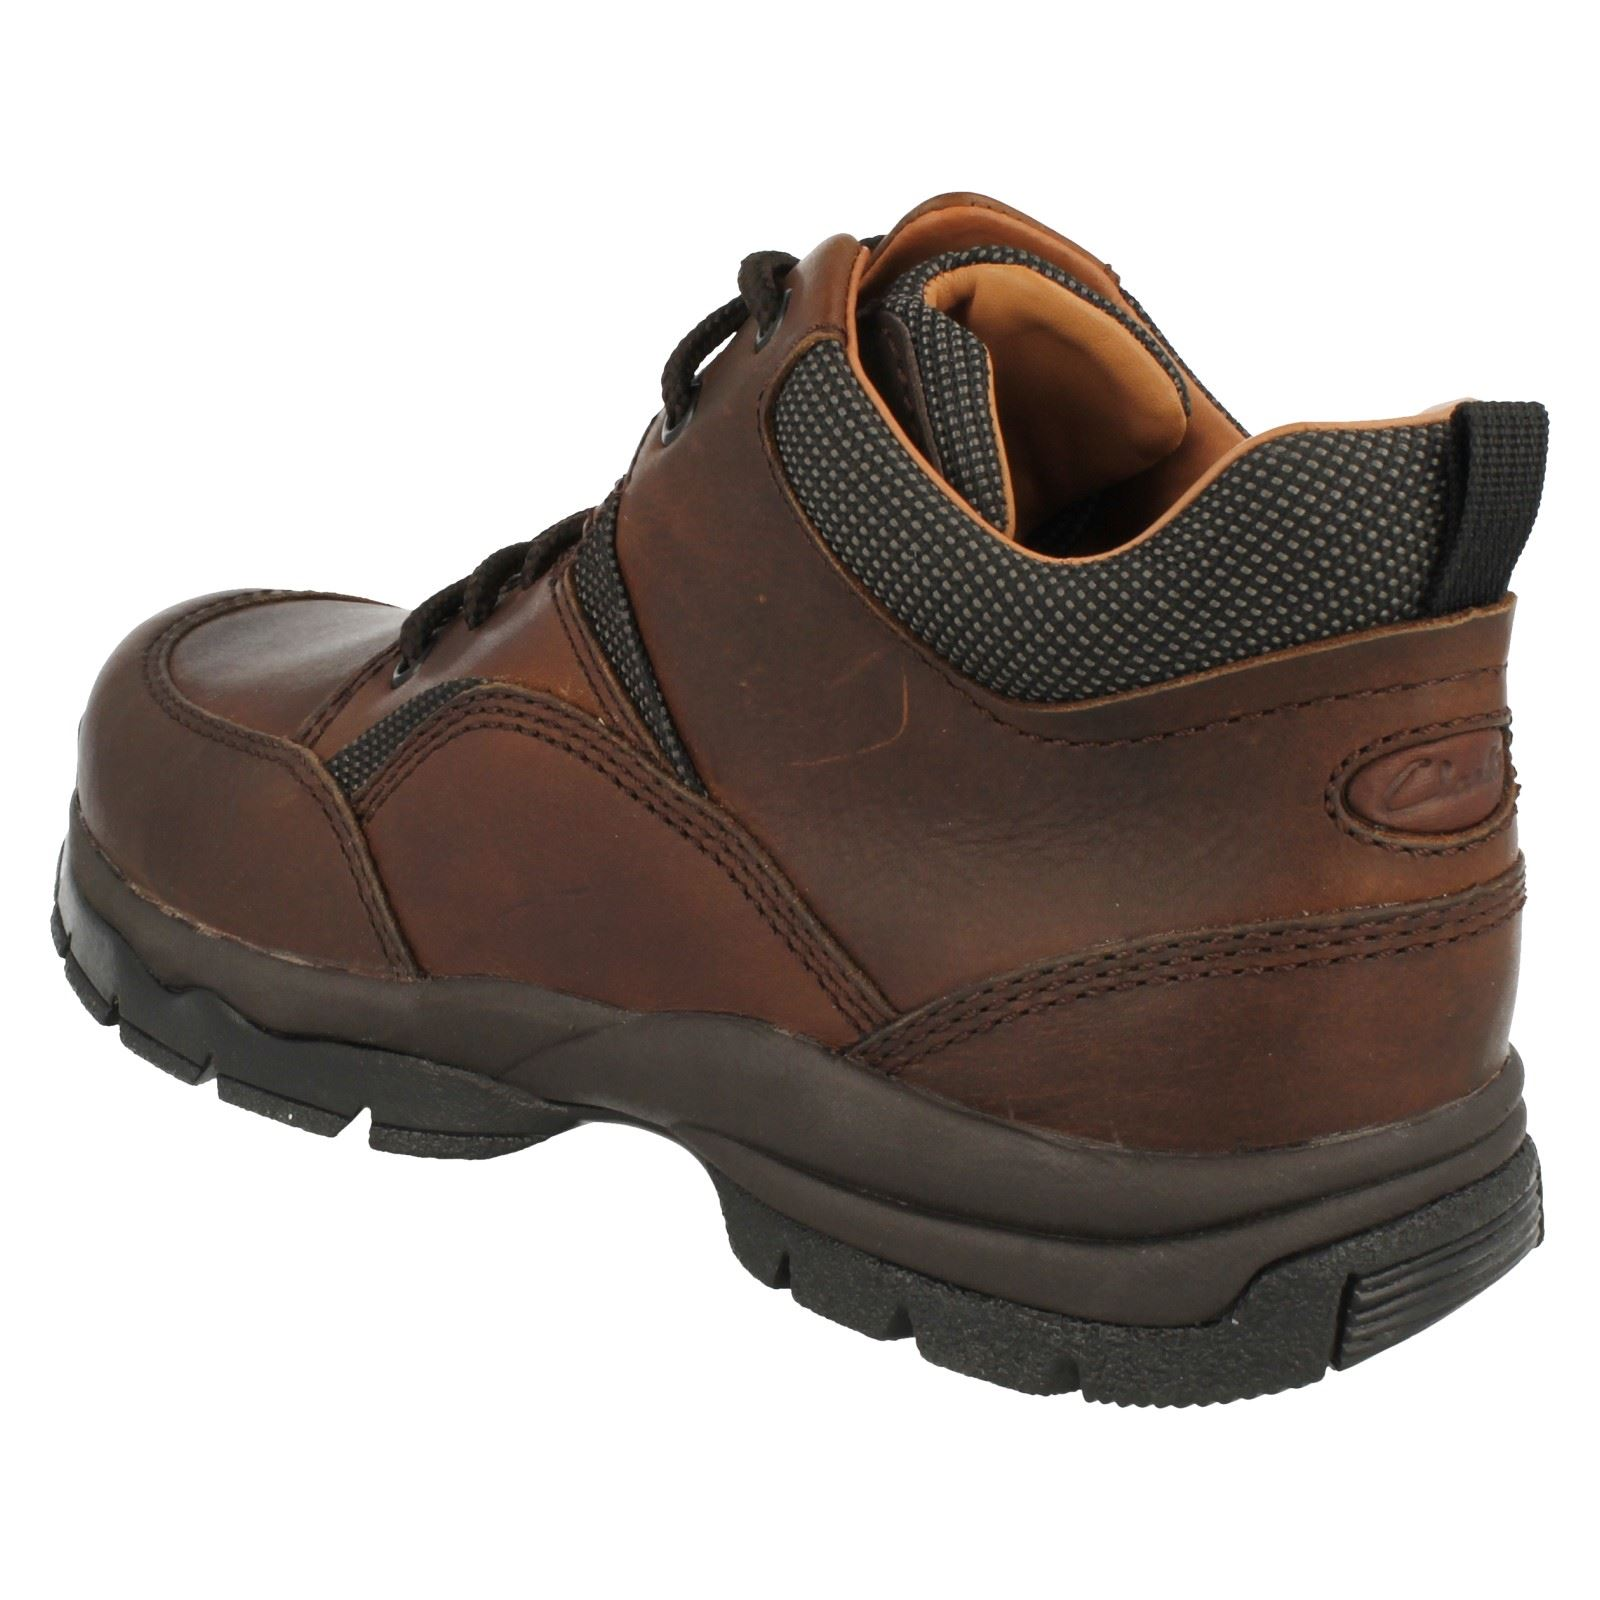 Mens Clarks Casual Lace Up Boots Fast Walker Hi